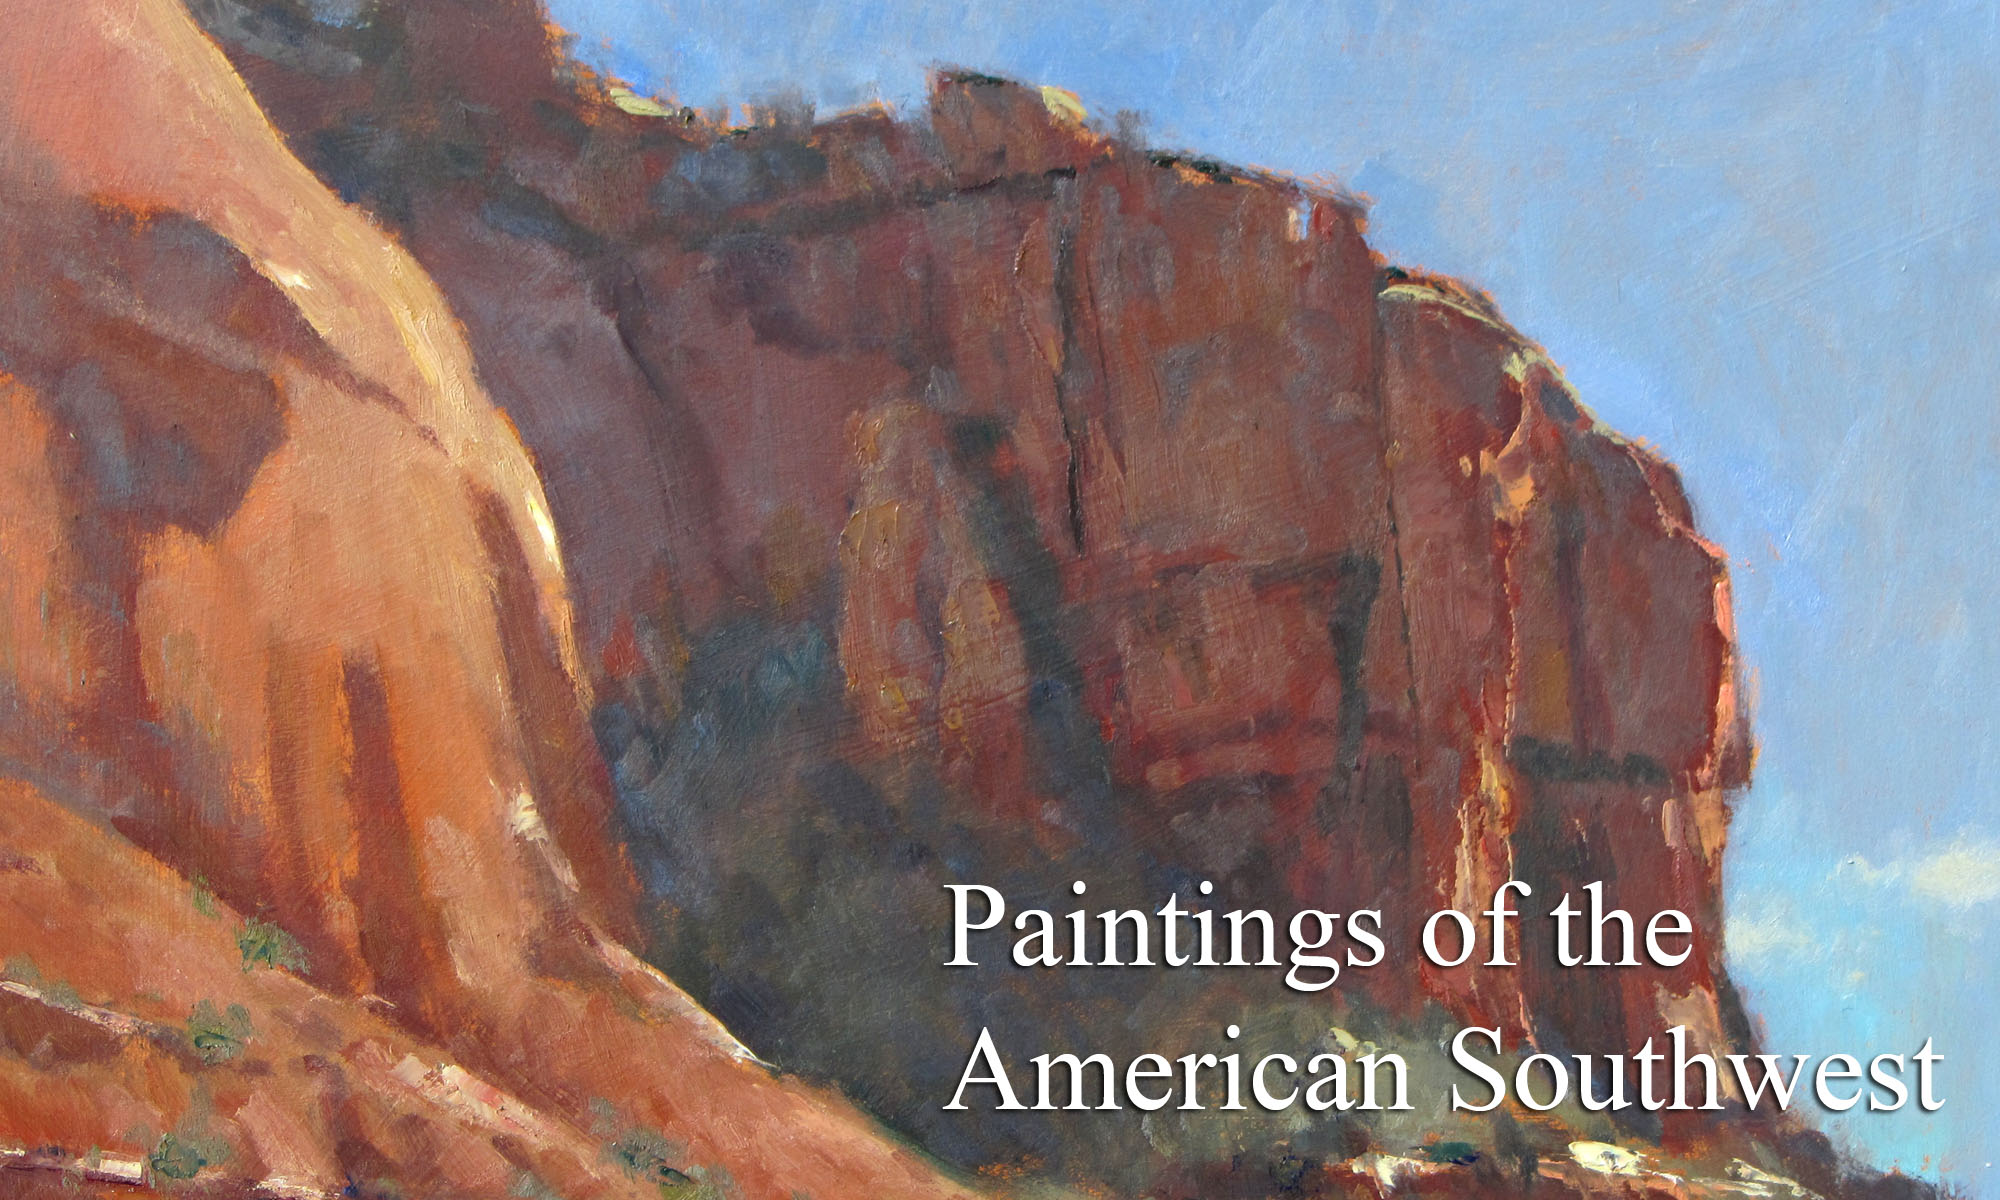 Paintings of the American Southwest by Artist Michael Chesley Johnson